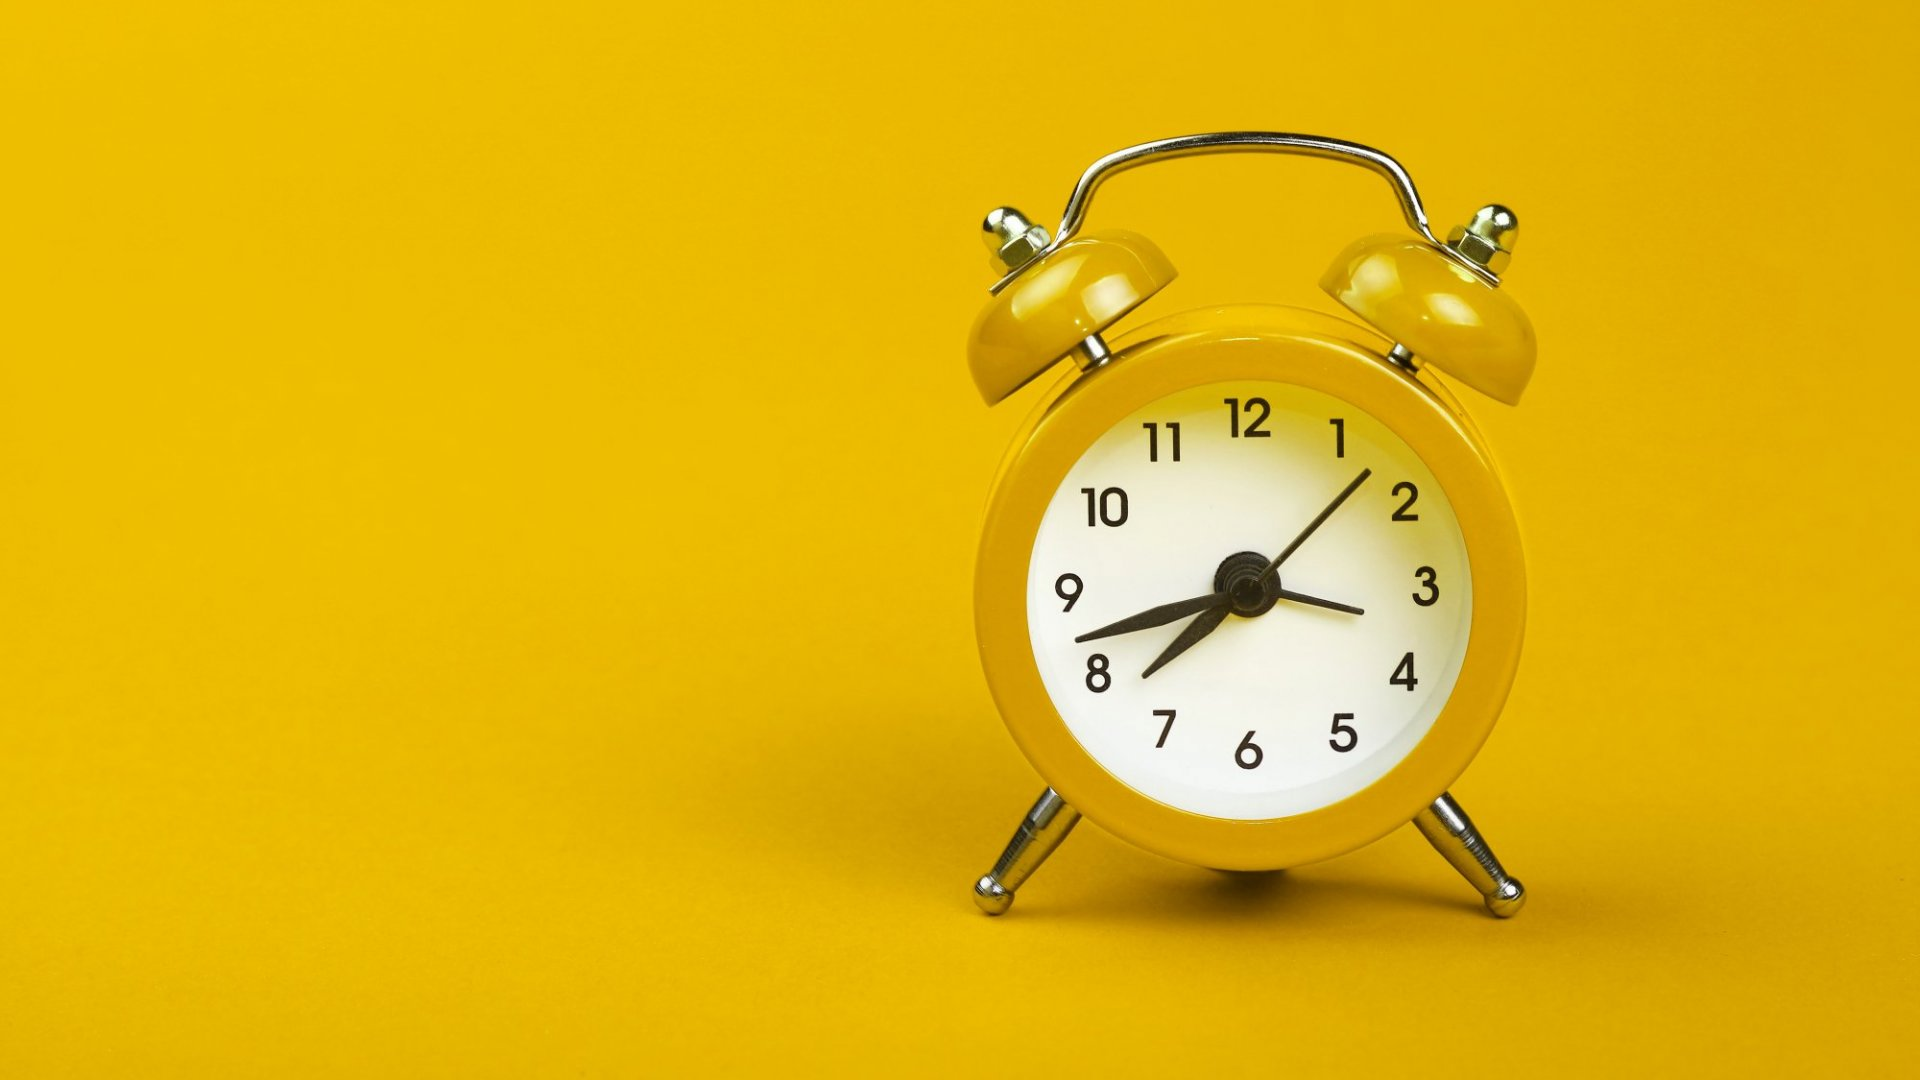 This Productivity Hack Will Help You Gain at Least an Hour